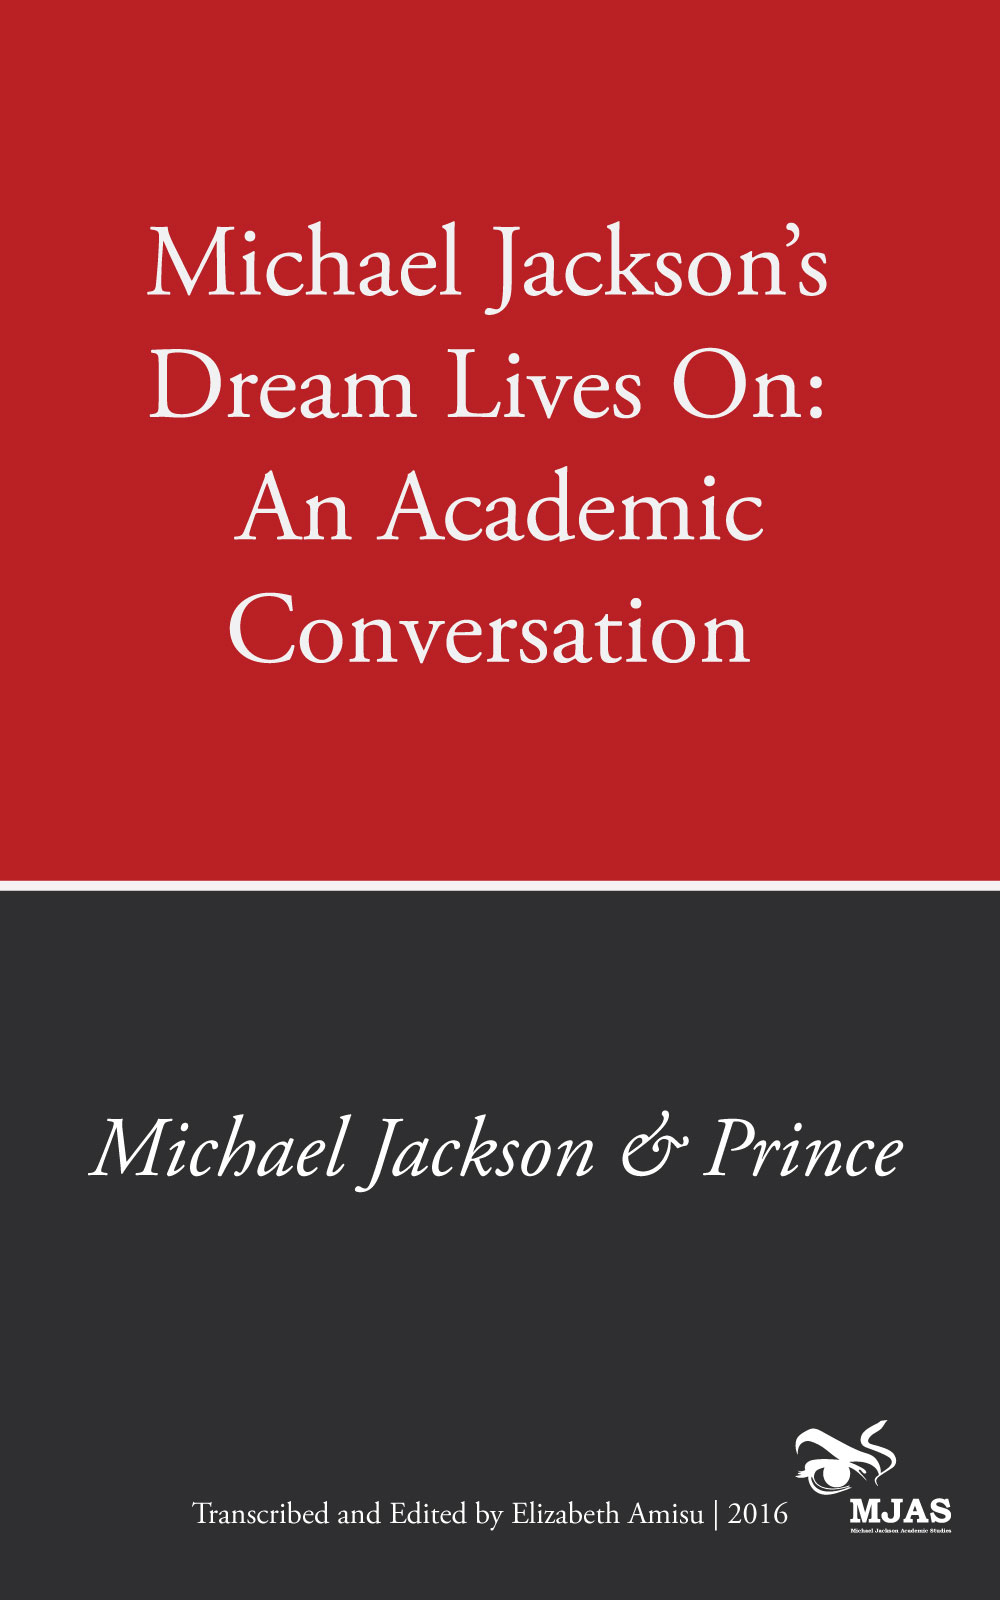 Michael Jackson and Prince Book Cover The Journal of Michael Jackson Academic Studies